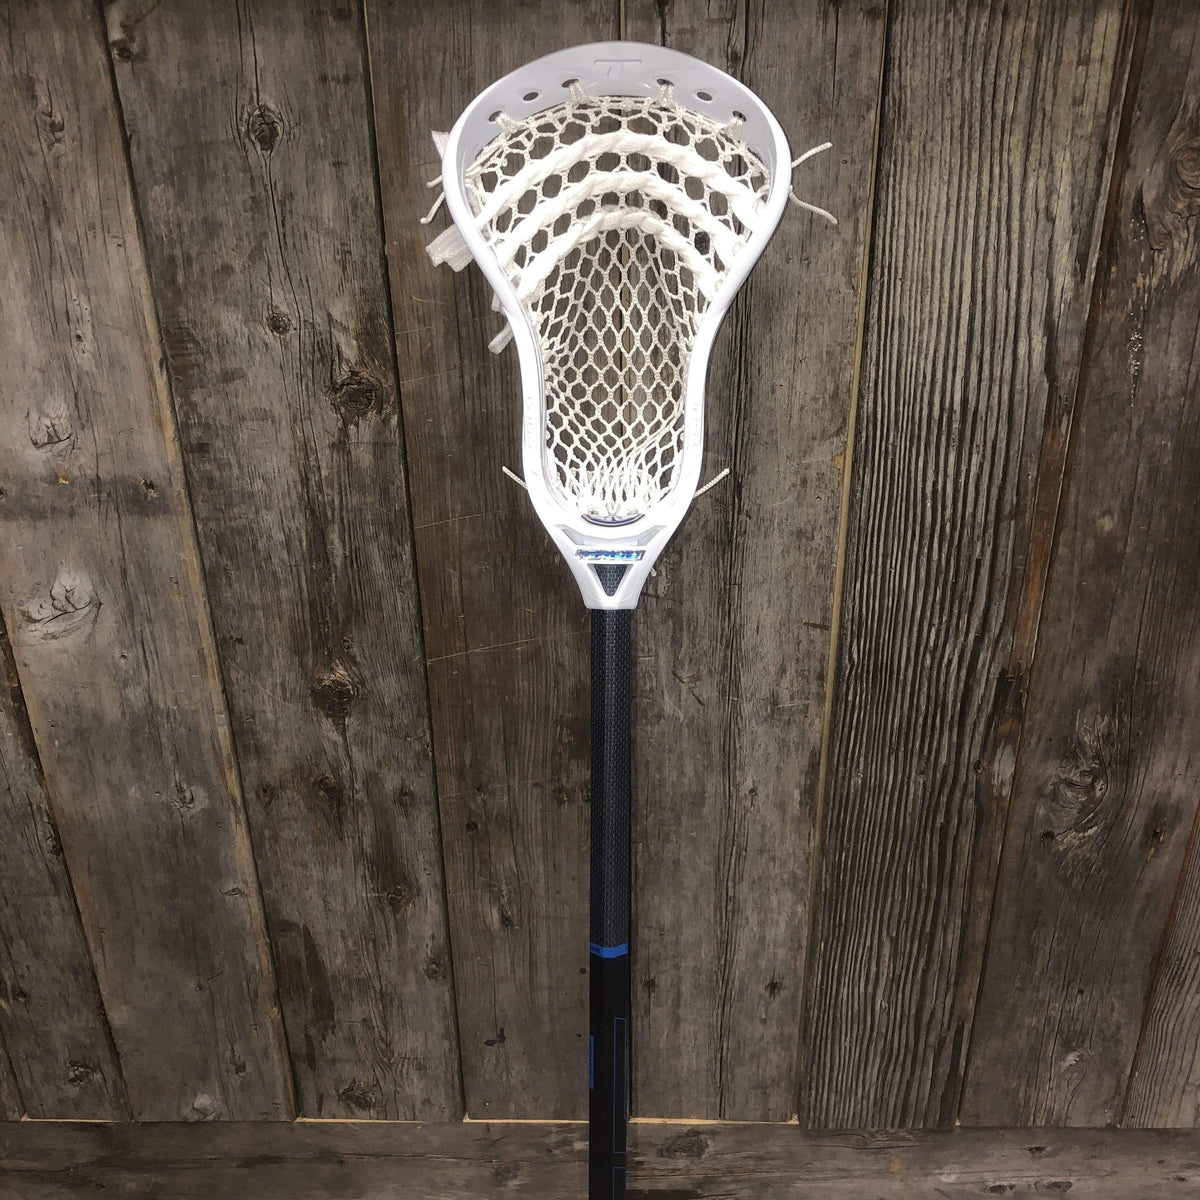 Complete Lacrosse Stick True Comp LZ 6.0 with a Custom Strung True Universal Head